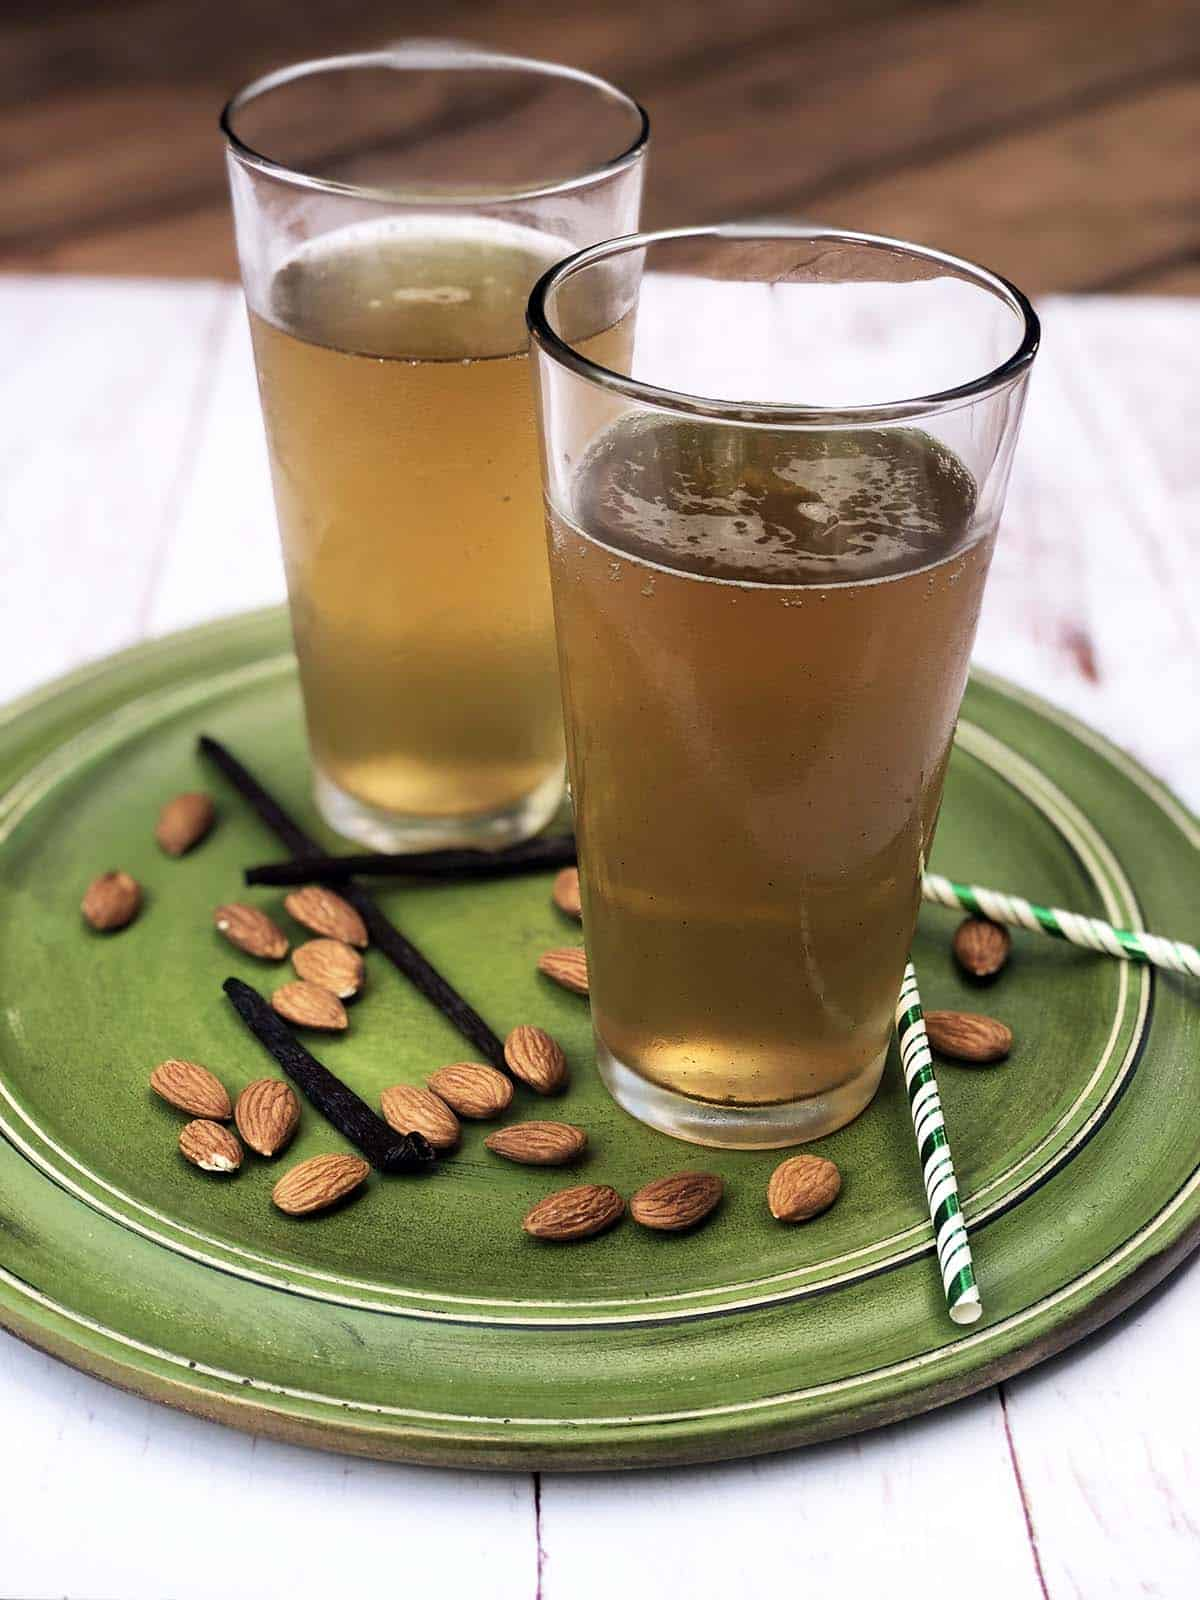 Two glasses of Apple Cider Vinegar Soda on a plate with almonds, vanilla pods, and two straws